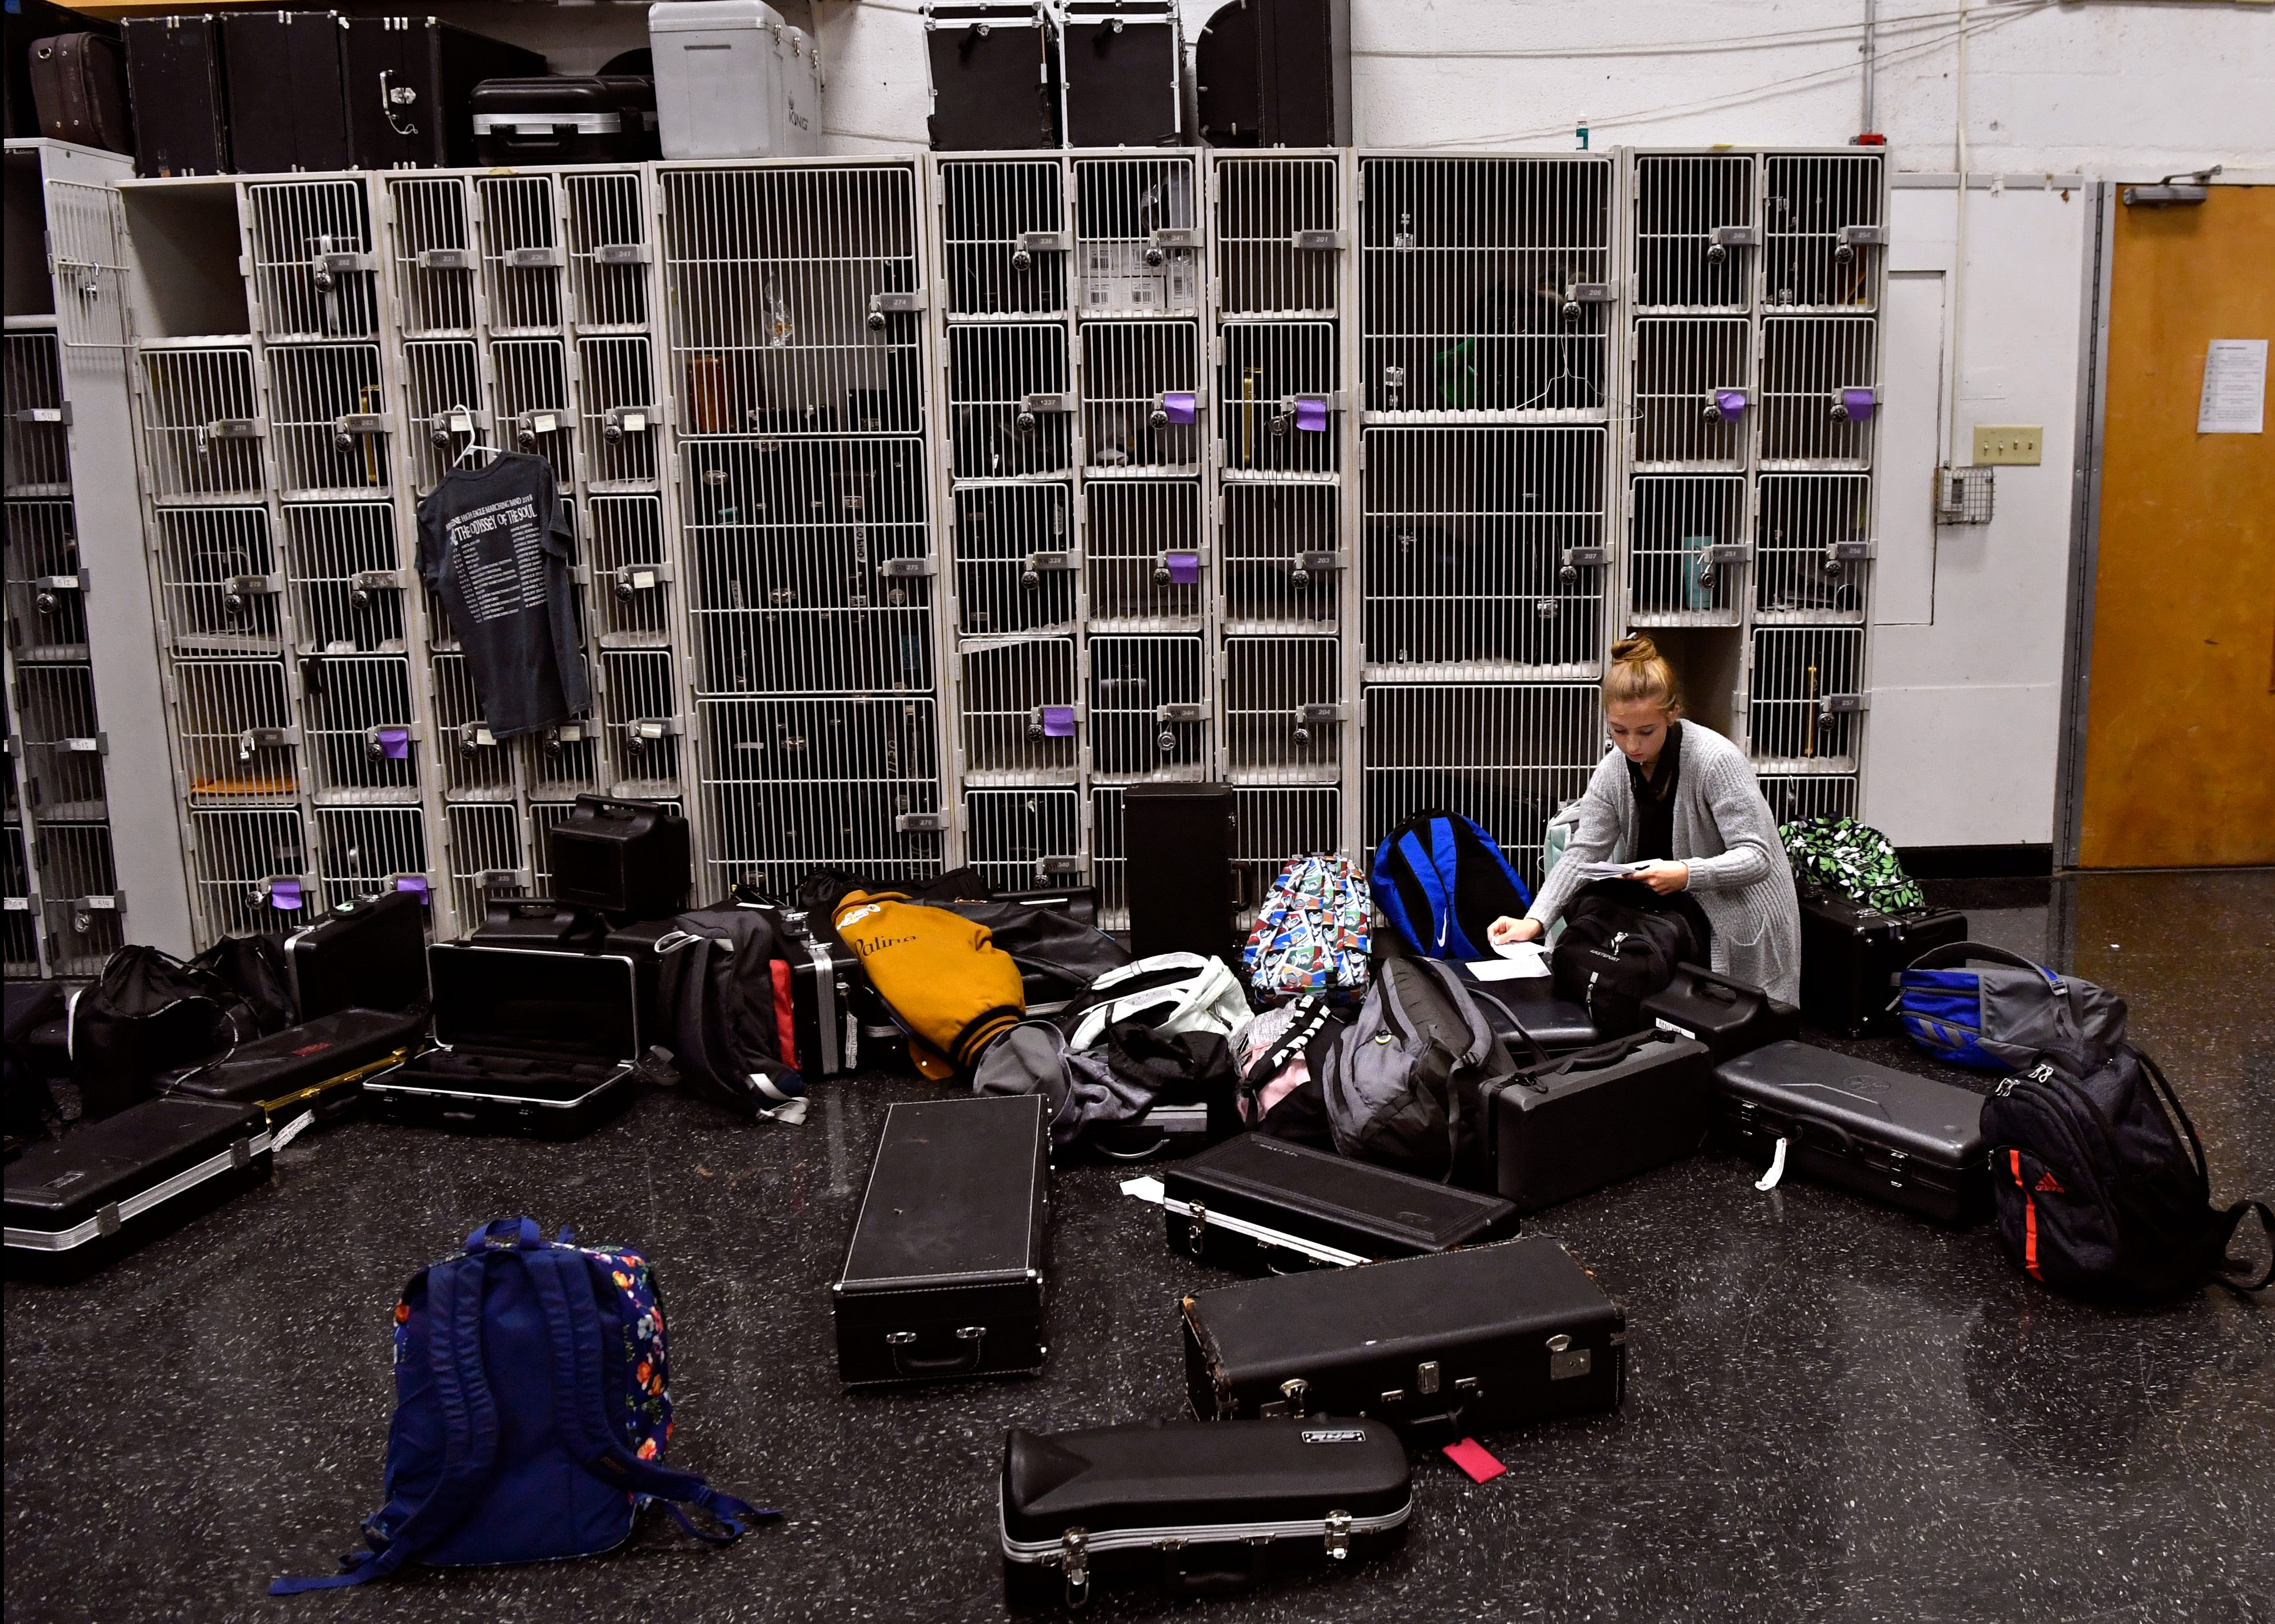 Alexis Wood, a sophomore member of the Eagle Band, goes through some note cards in the Abilene High School band hall. Storage space has become a problem in the band hall as the number of students has increased over the years.